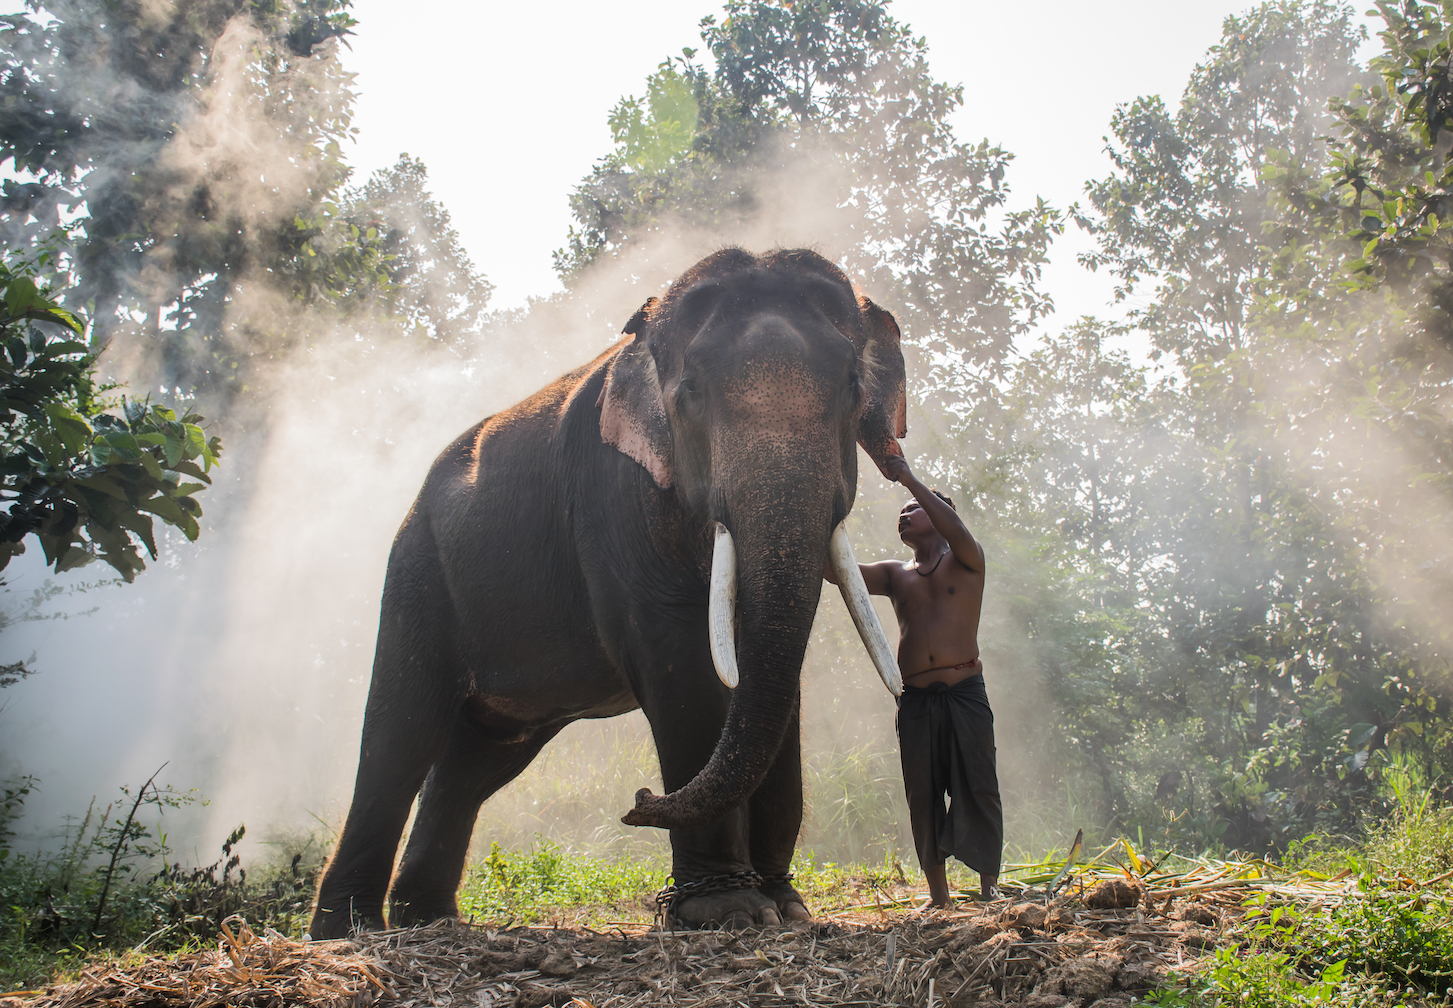 A new study has found that elephants have distinct personalities, and some in a herd may be more outgoing, or attentive.